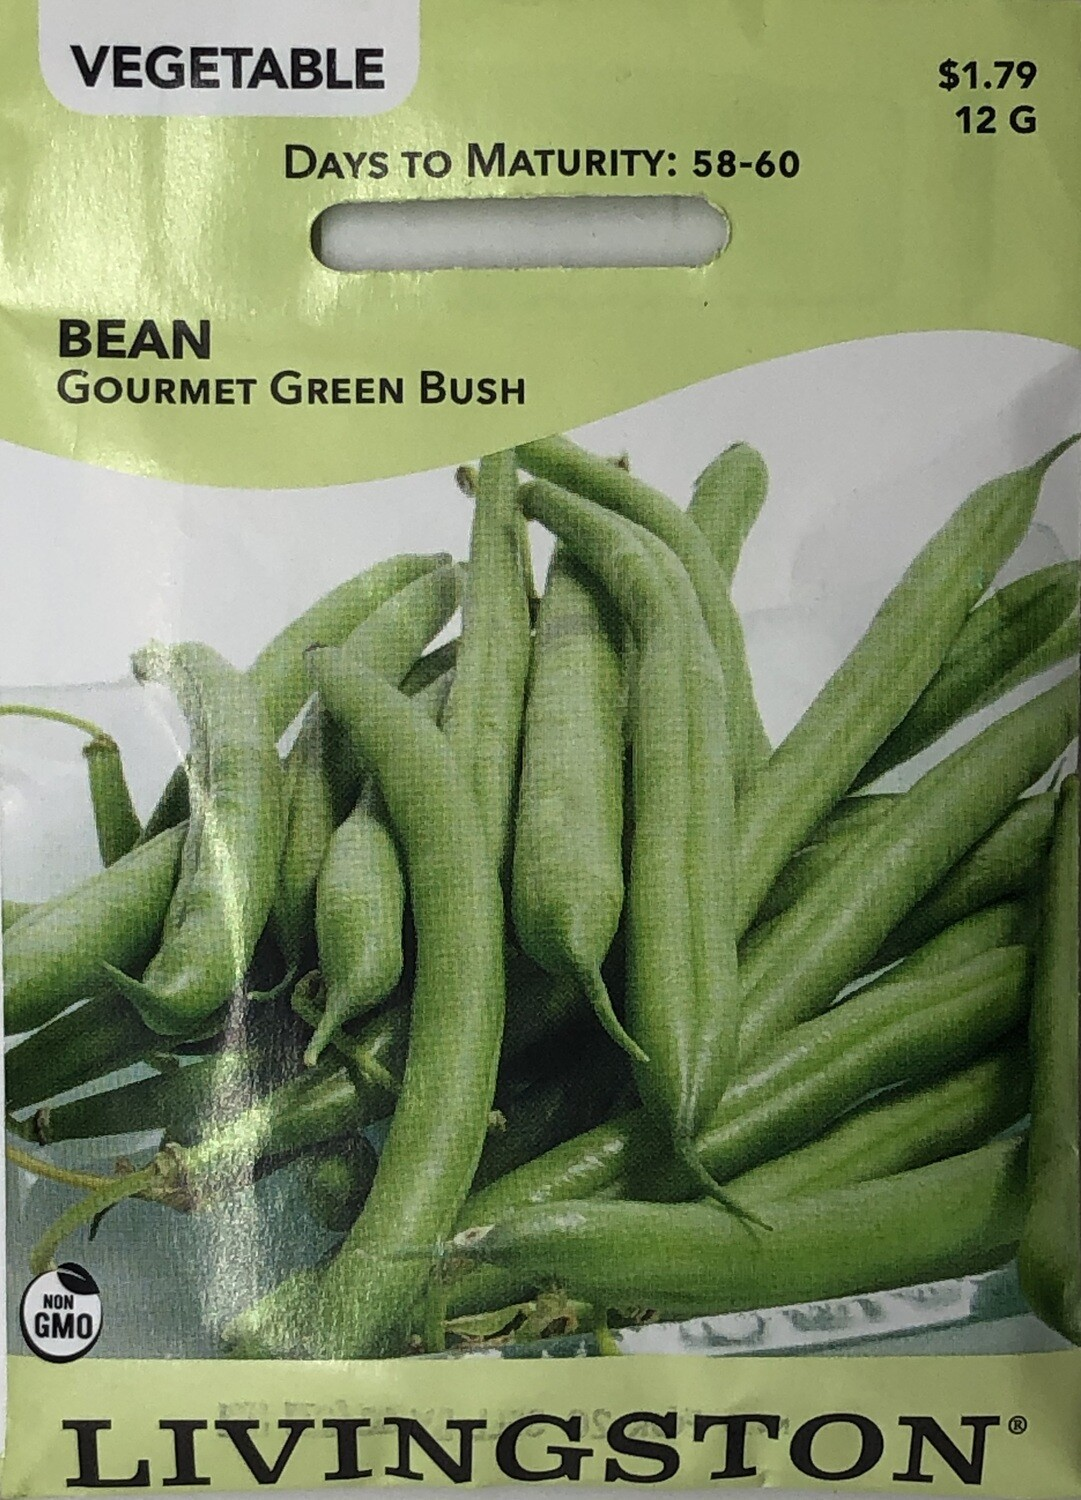 BEAN - GOURMET GREEN